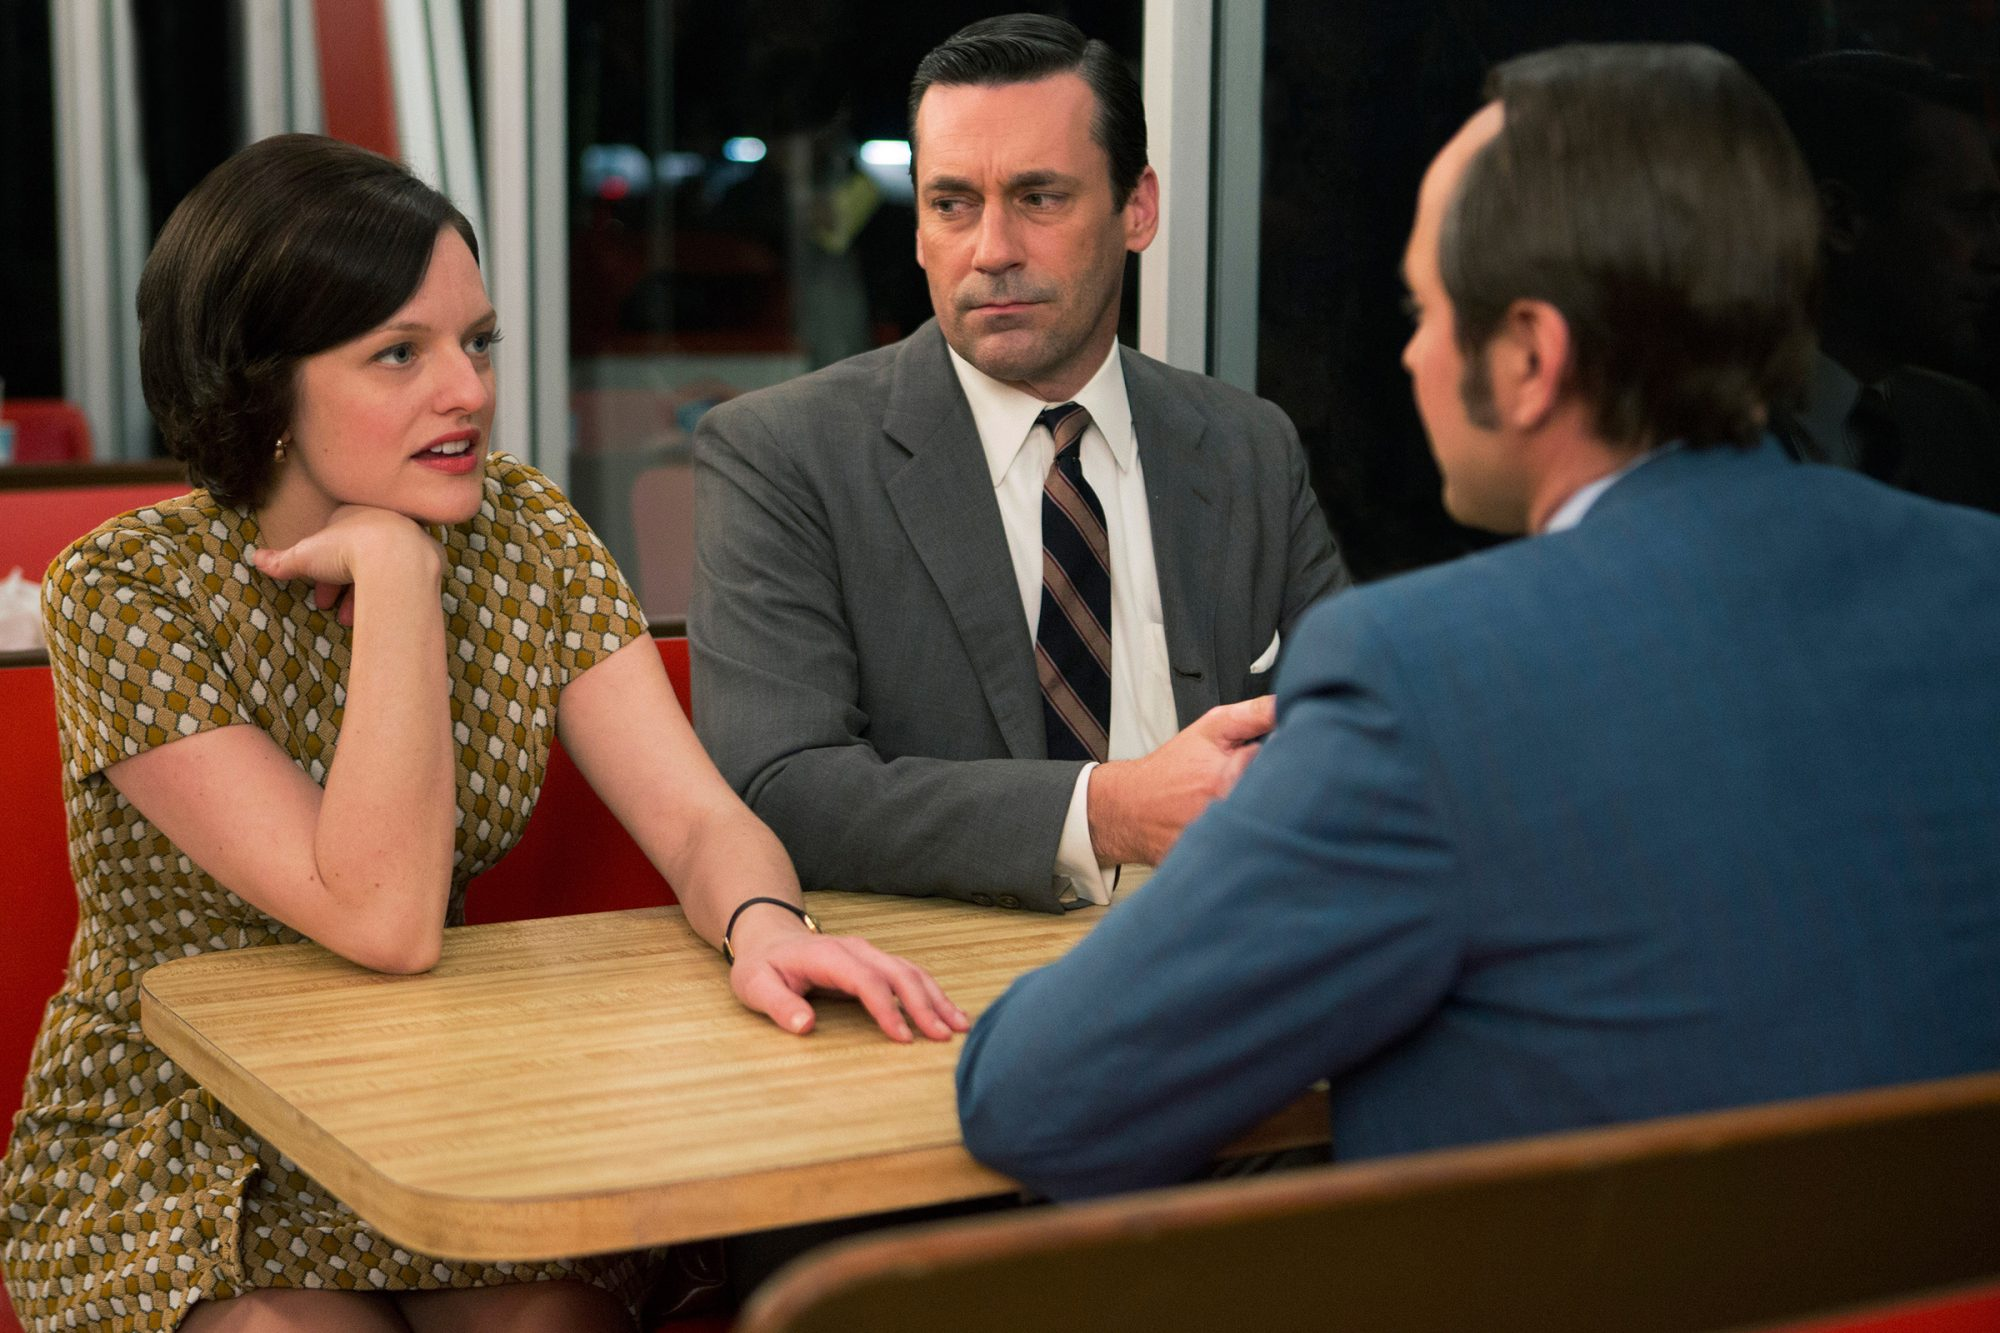 MAD MEN, (from left): Elisabeth Moss, Jon Hamm, Vincent Kartheiser (back to camera), 'The